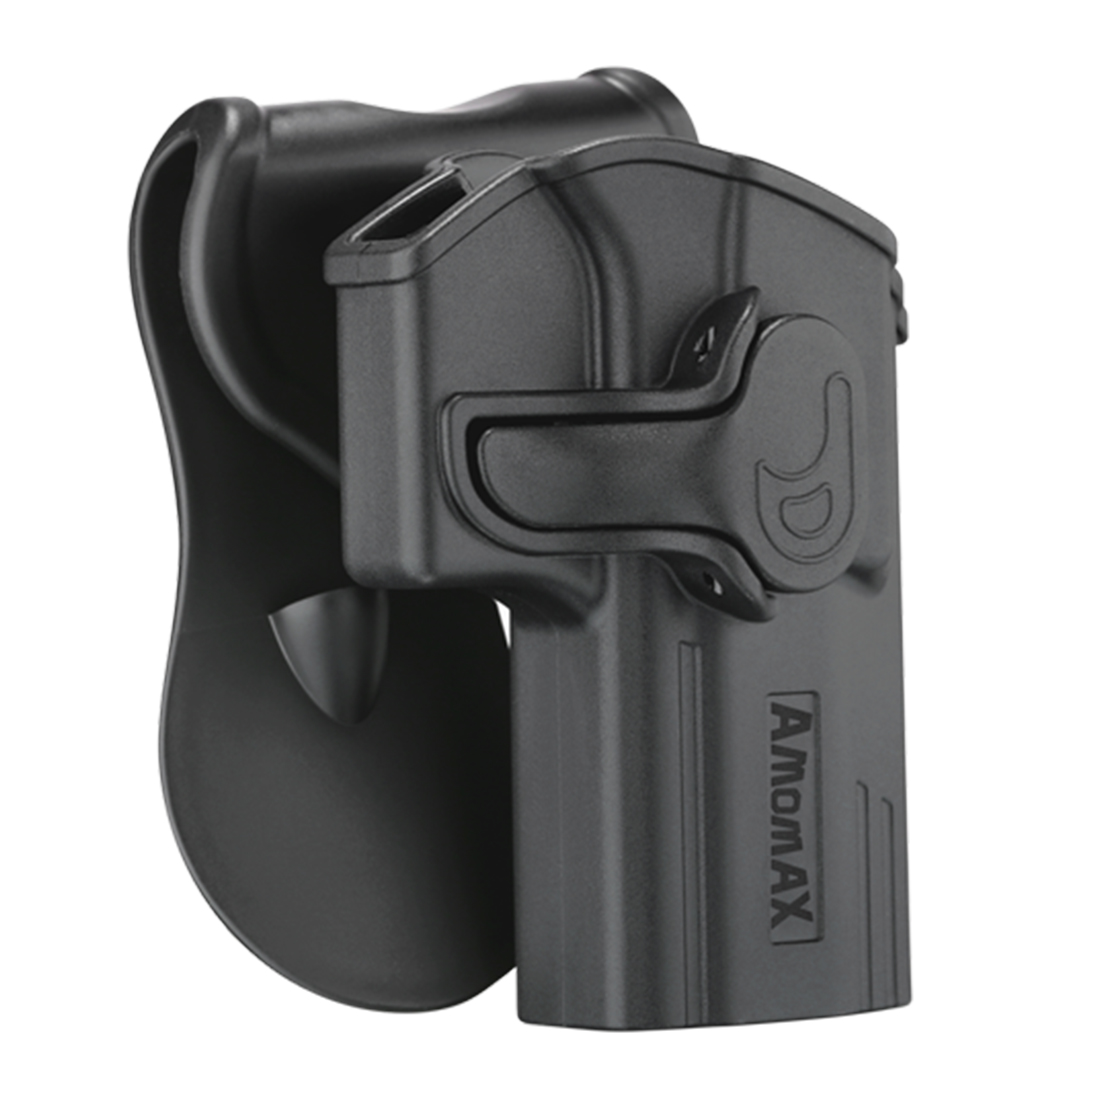 Surwish Adjustable Tactical Holster For Jericho 941 Toy Gun Modified Tactics Accessories - Right -hand  Black